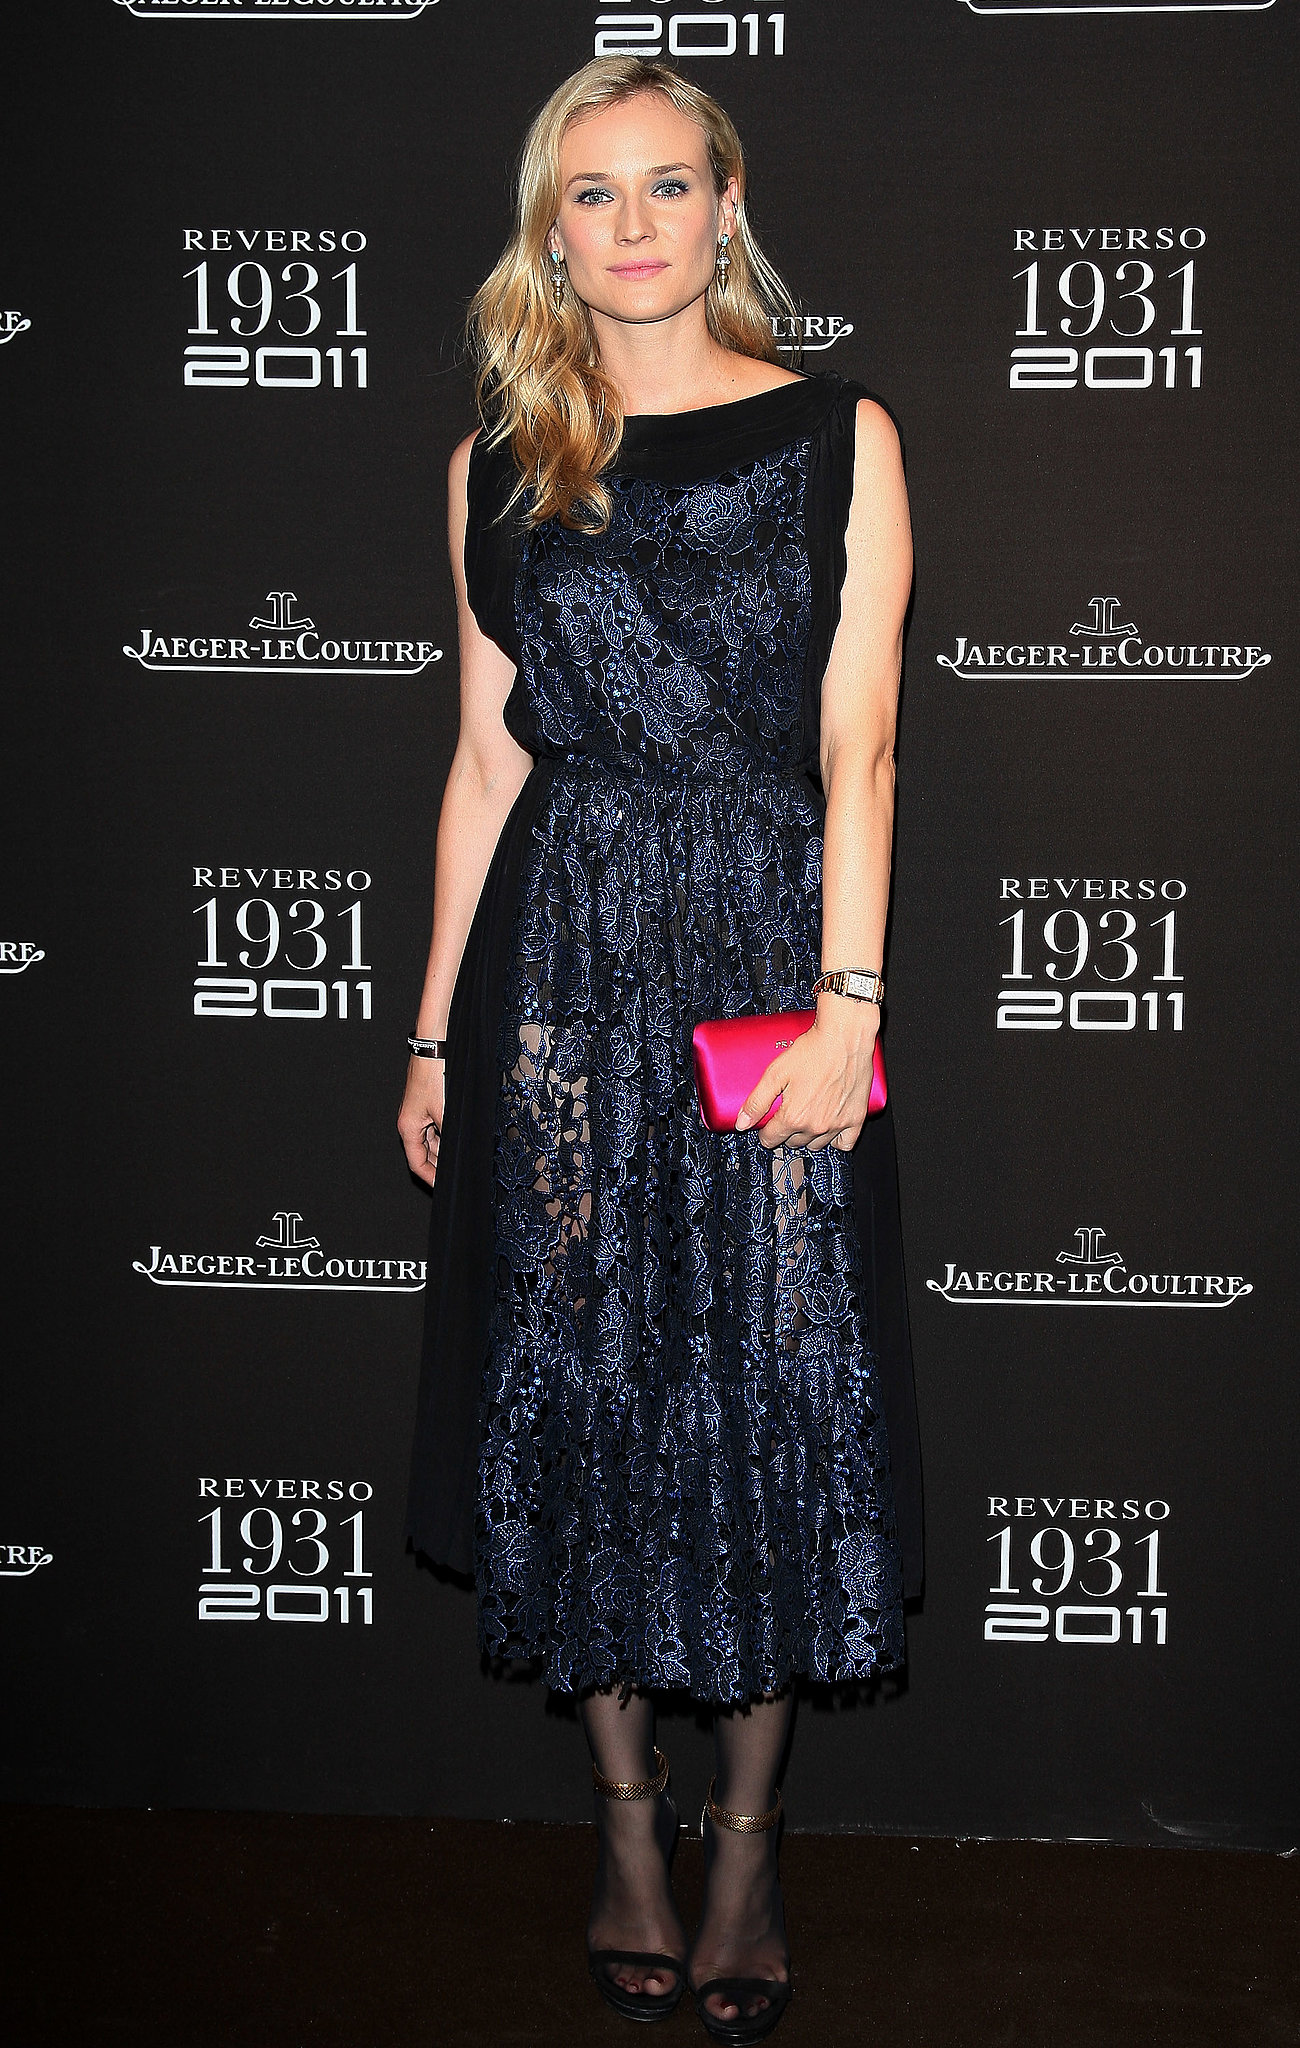 She donned ladylike Vionnet in lacy, metallic blue for Les Beaux-Arts anniversary celebration in Paris in 2011.